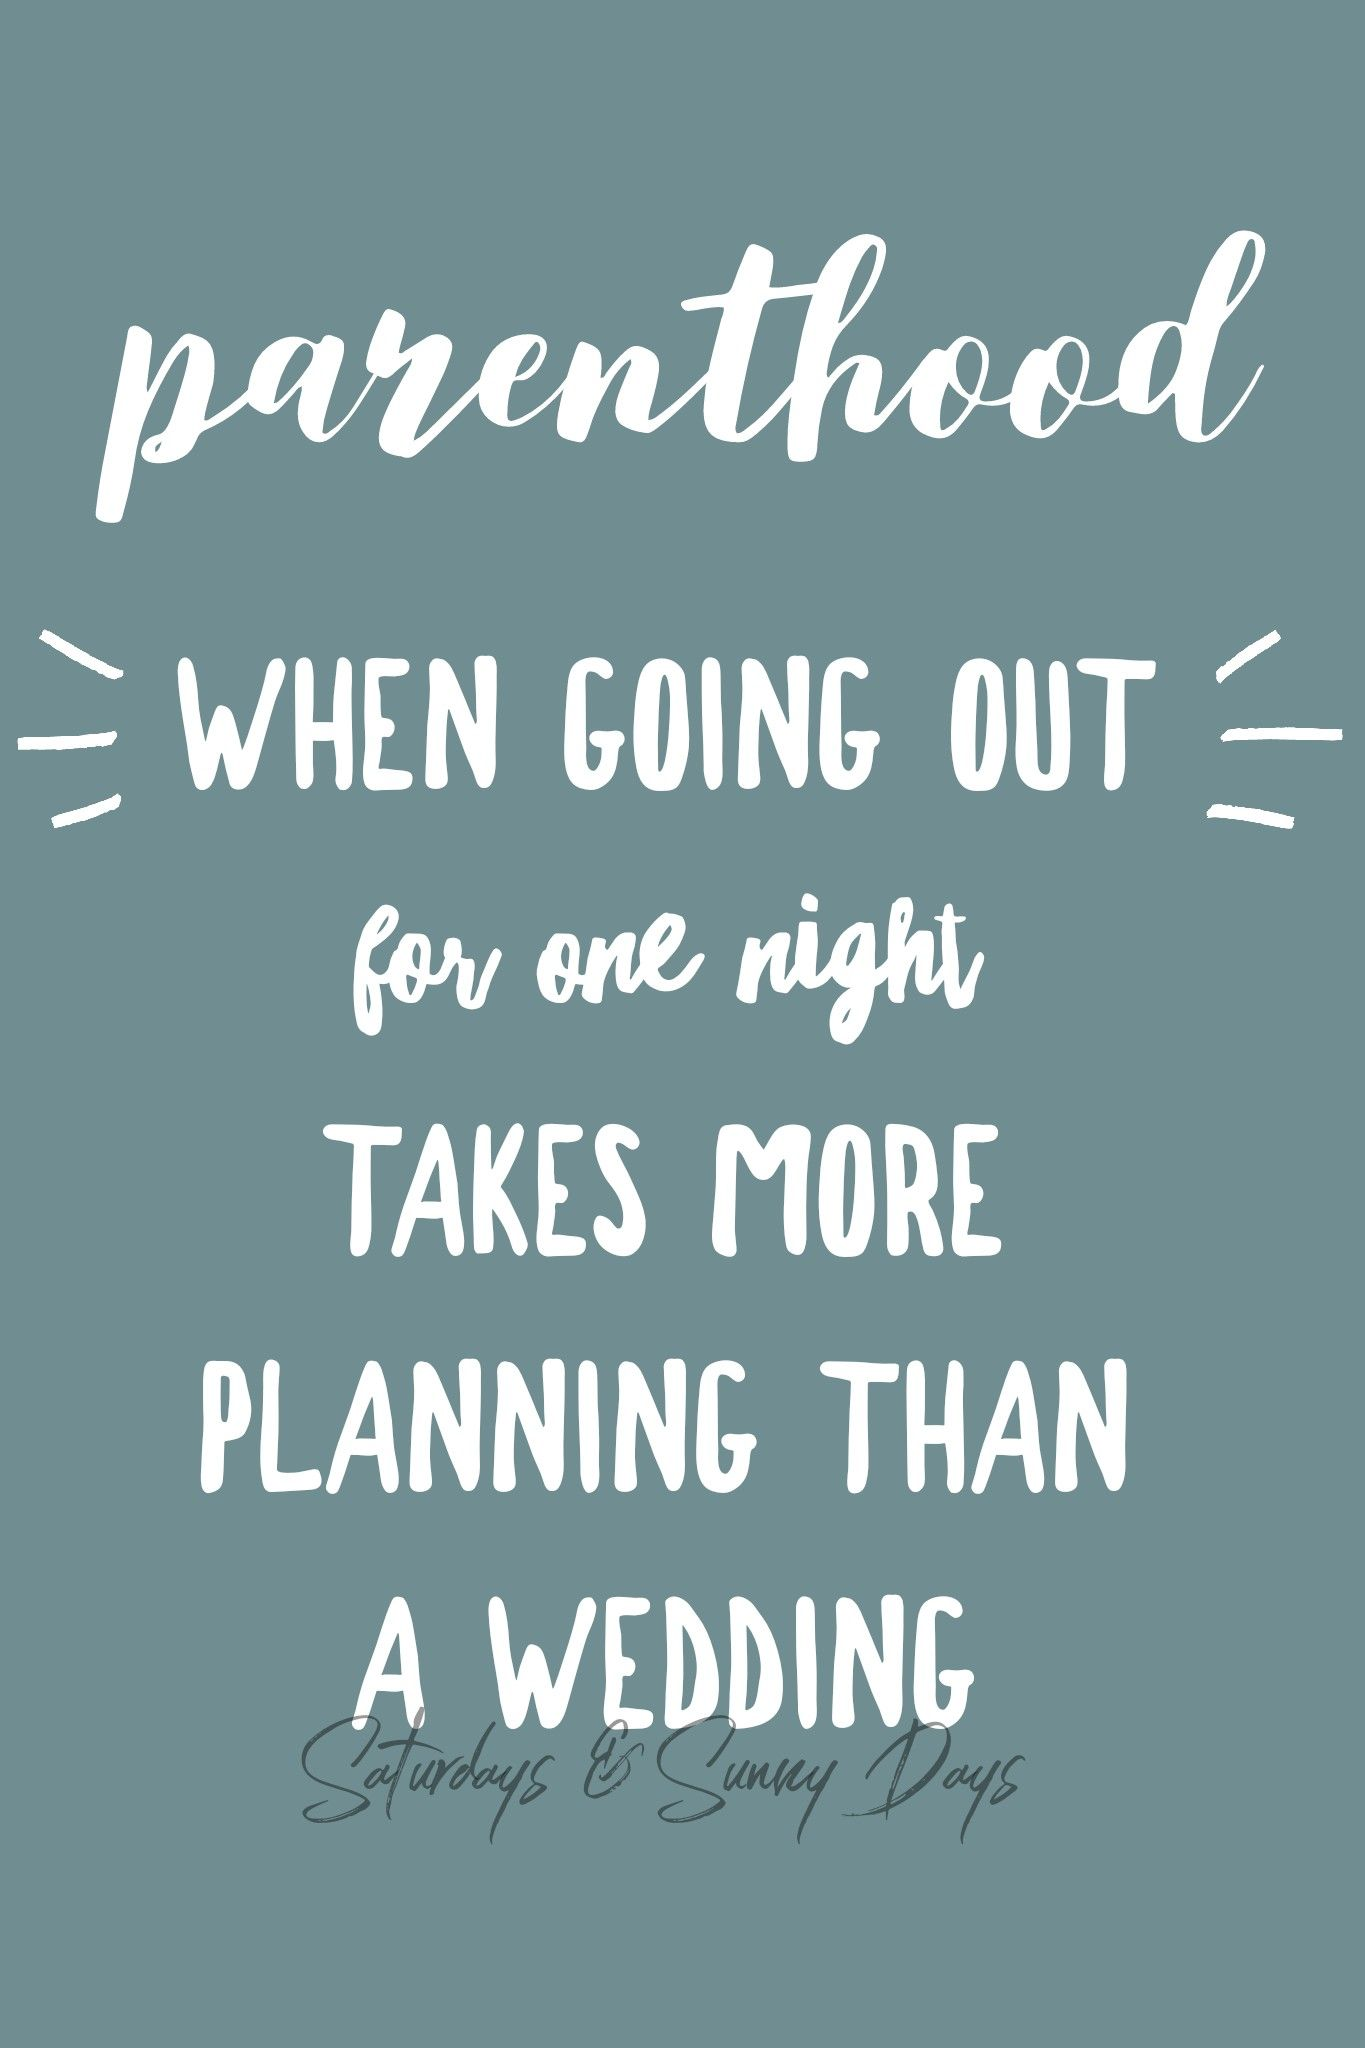 Ha! Parenthood and going out takes an insane amount of work ...